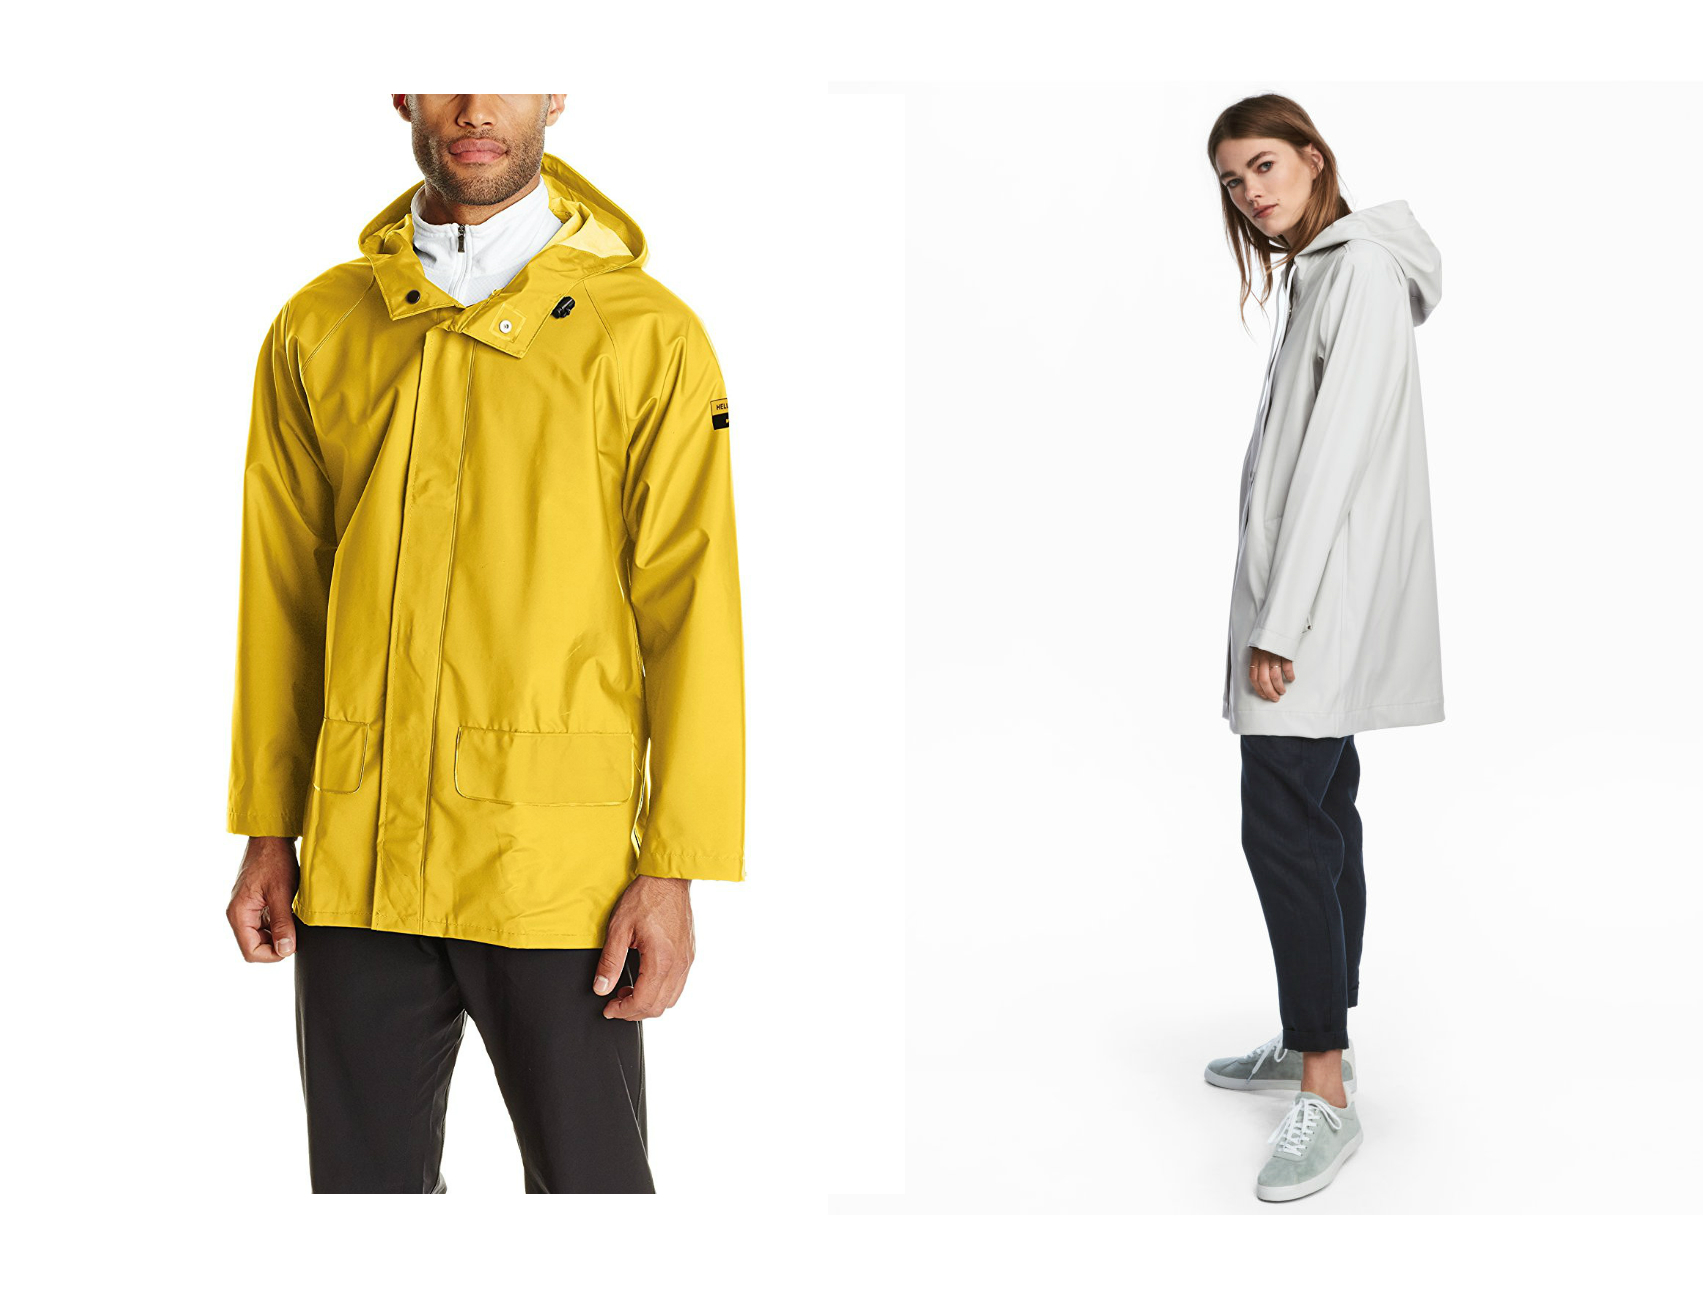 Raincoats best raincoats PRLXBAK